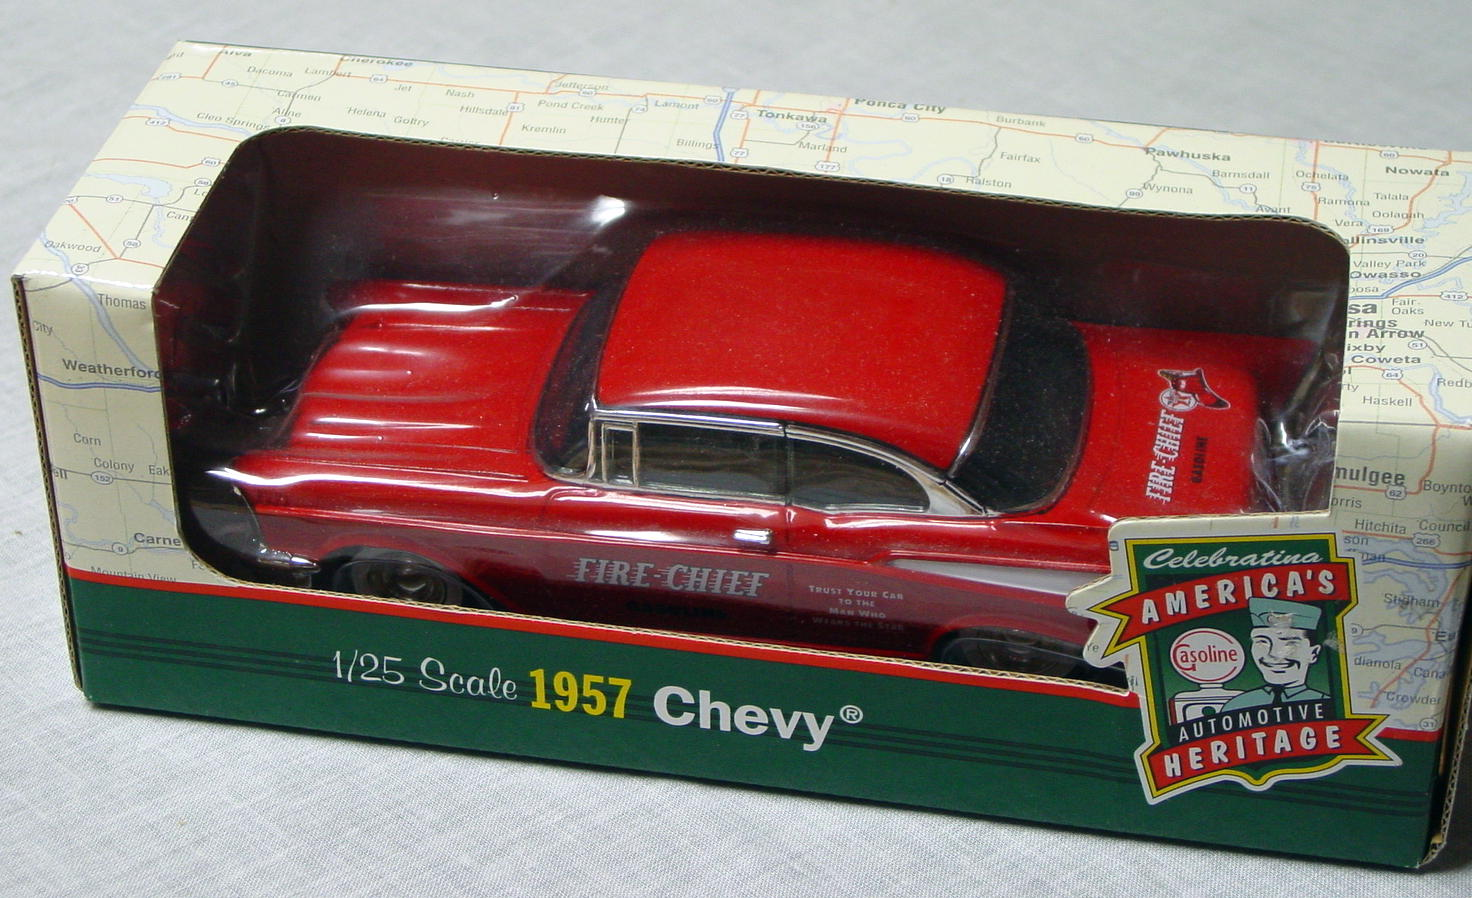 1_24 Scale - ERTL 57 Chevy Fire Chief Gas